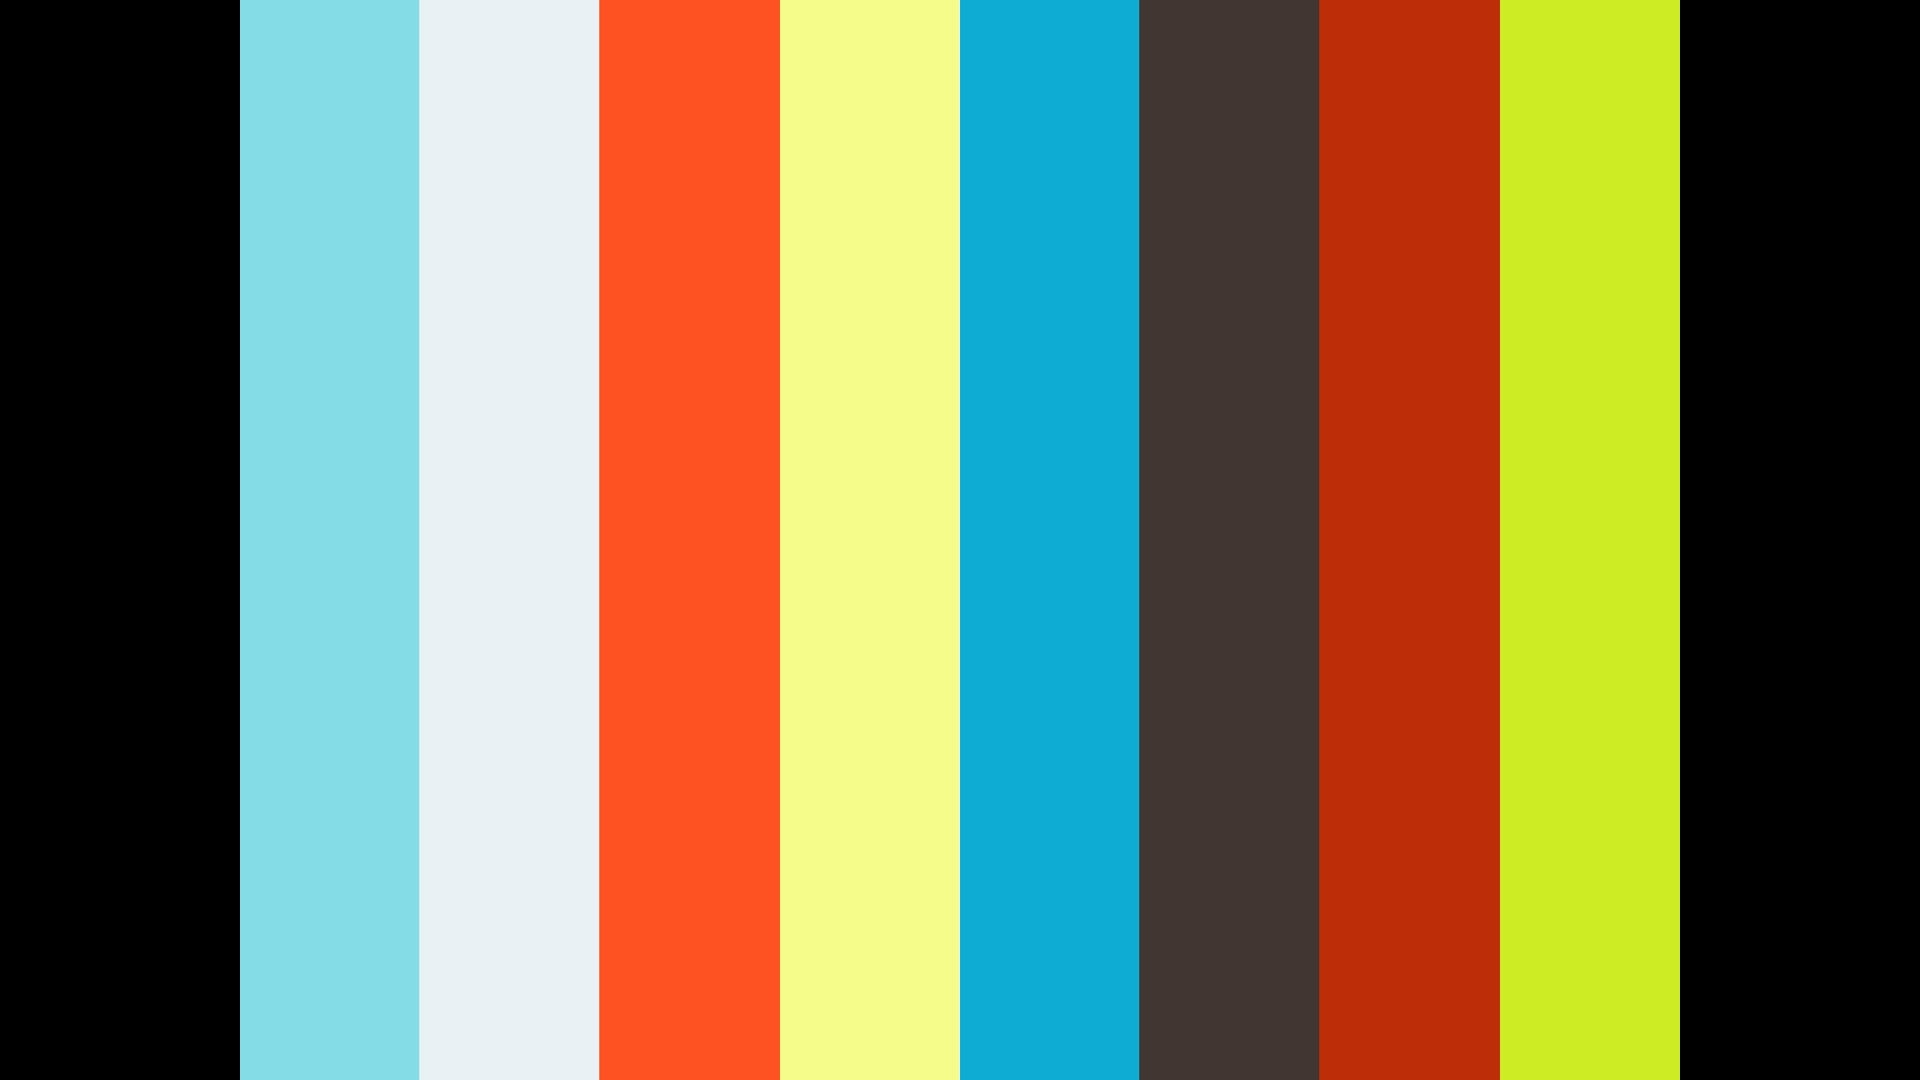 Nollie Inward Heelflip Pro Tutorial Videos